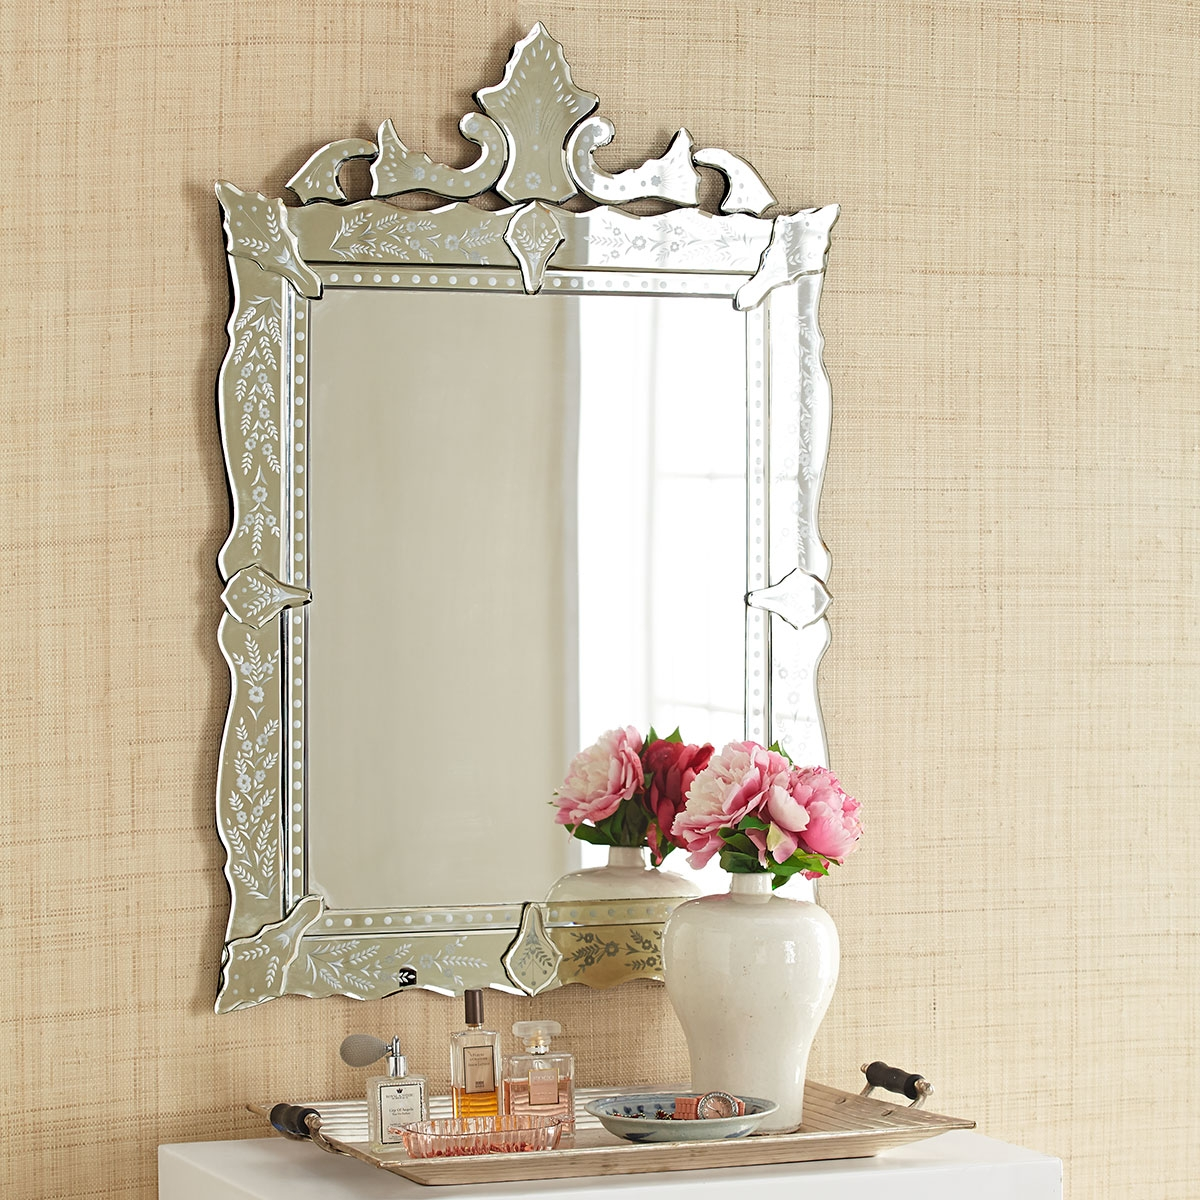 Venetian Mirror Intended For Venetian Wall Mirror (Image 11 of 15)